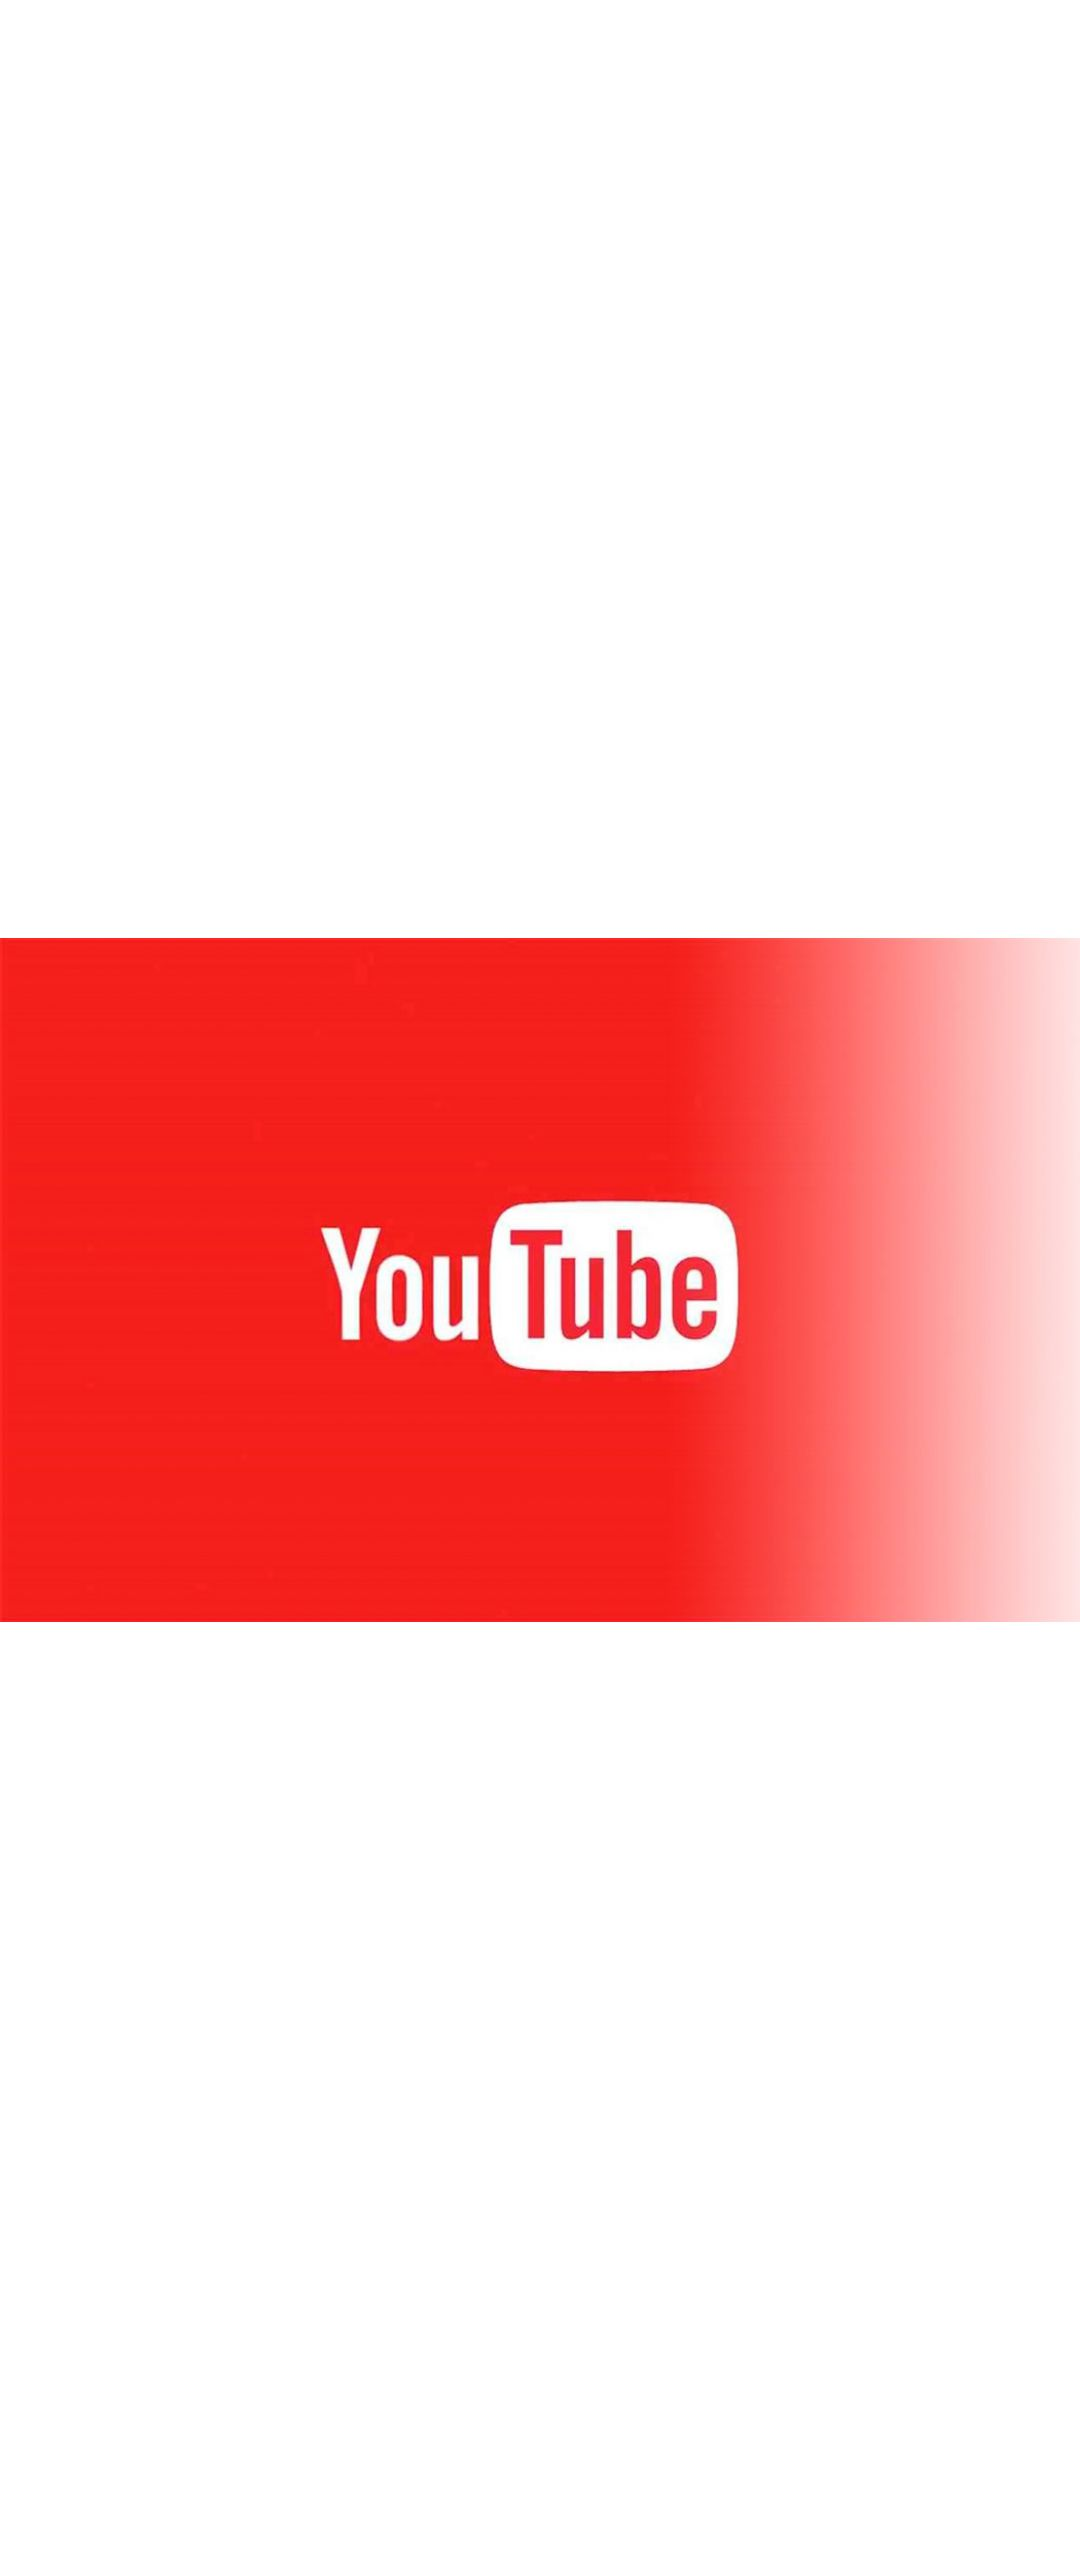 YouTube se adaptará al tamaño de los videos